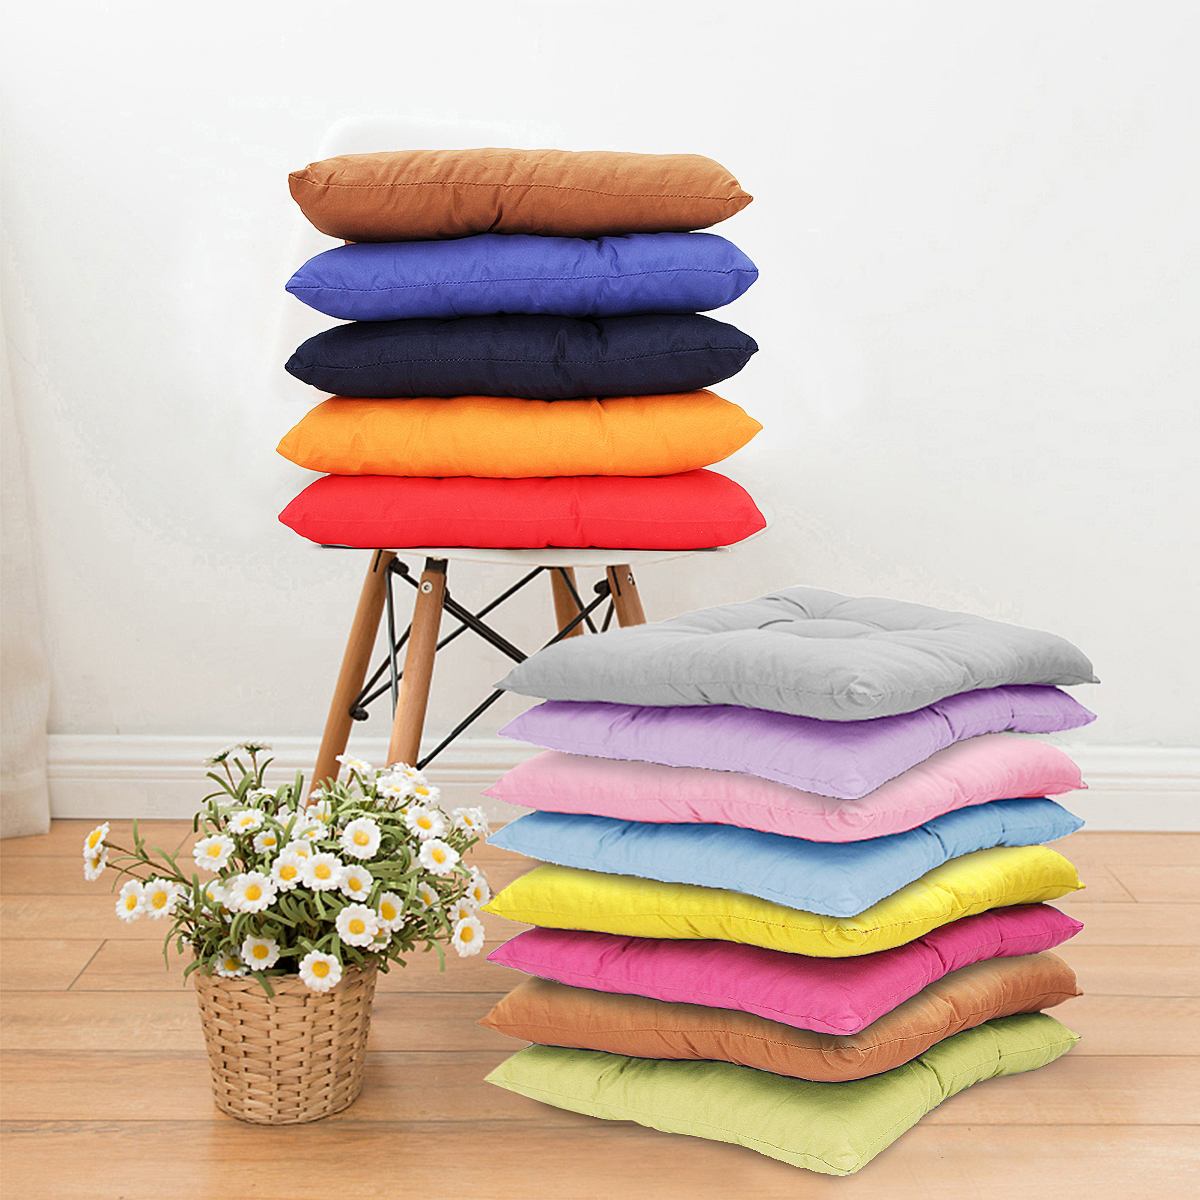 15.8*15.8inch Soft Square Cotton Chair Seat Cushion Pillow Mat Pads Buttocks for Kitchen Chairs Home Office Decor